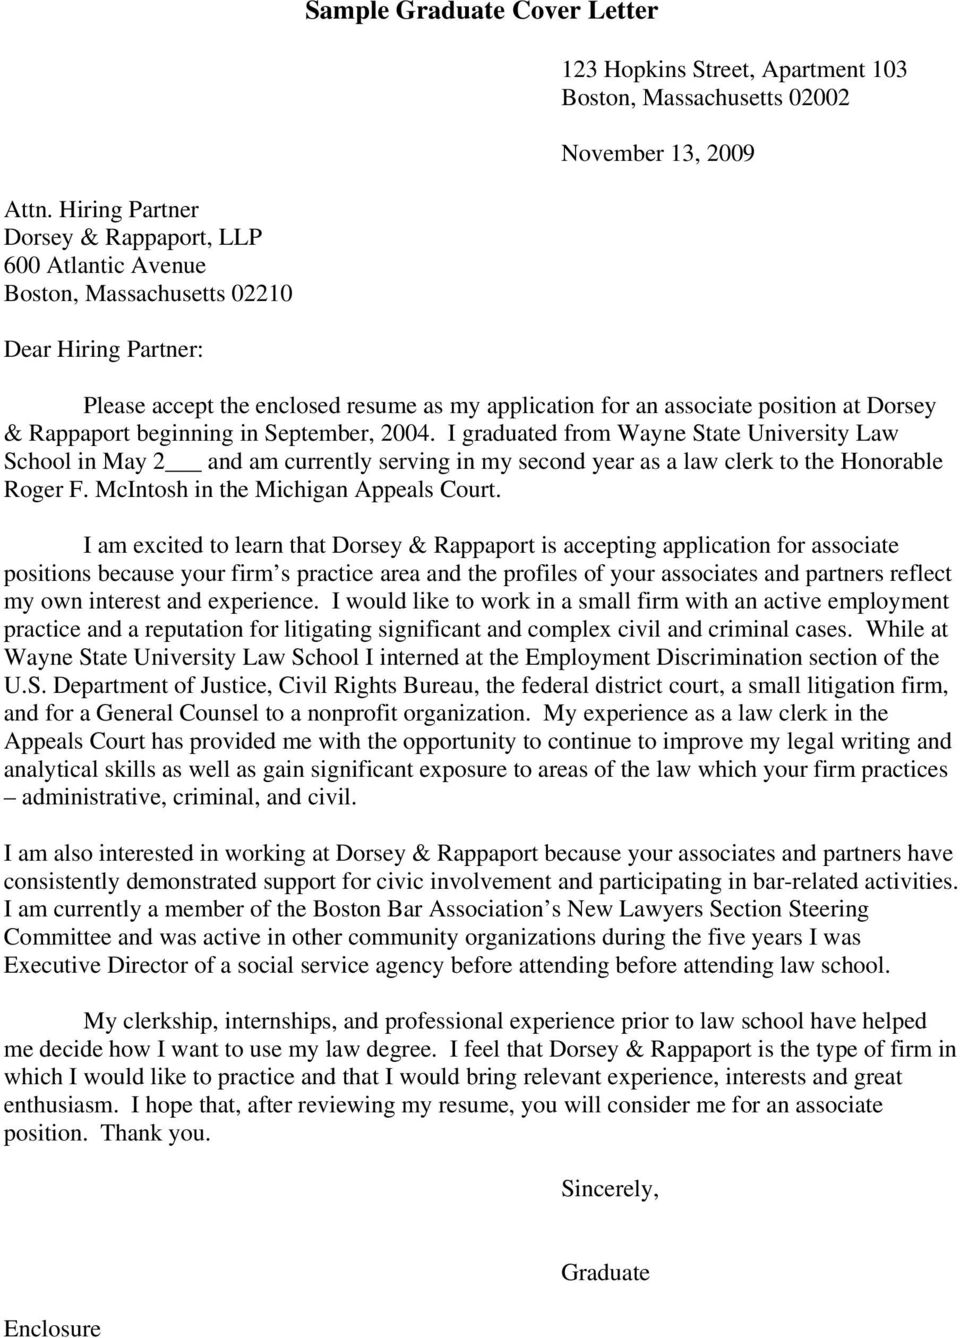 Cover Letter For Law Firm Internship from docplayer.net